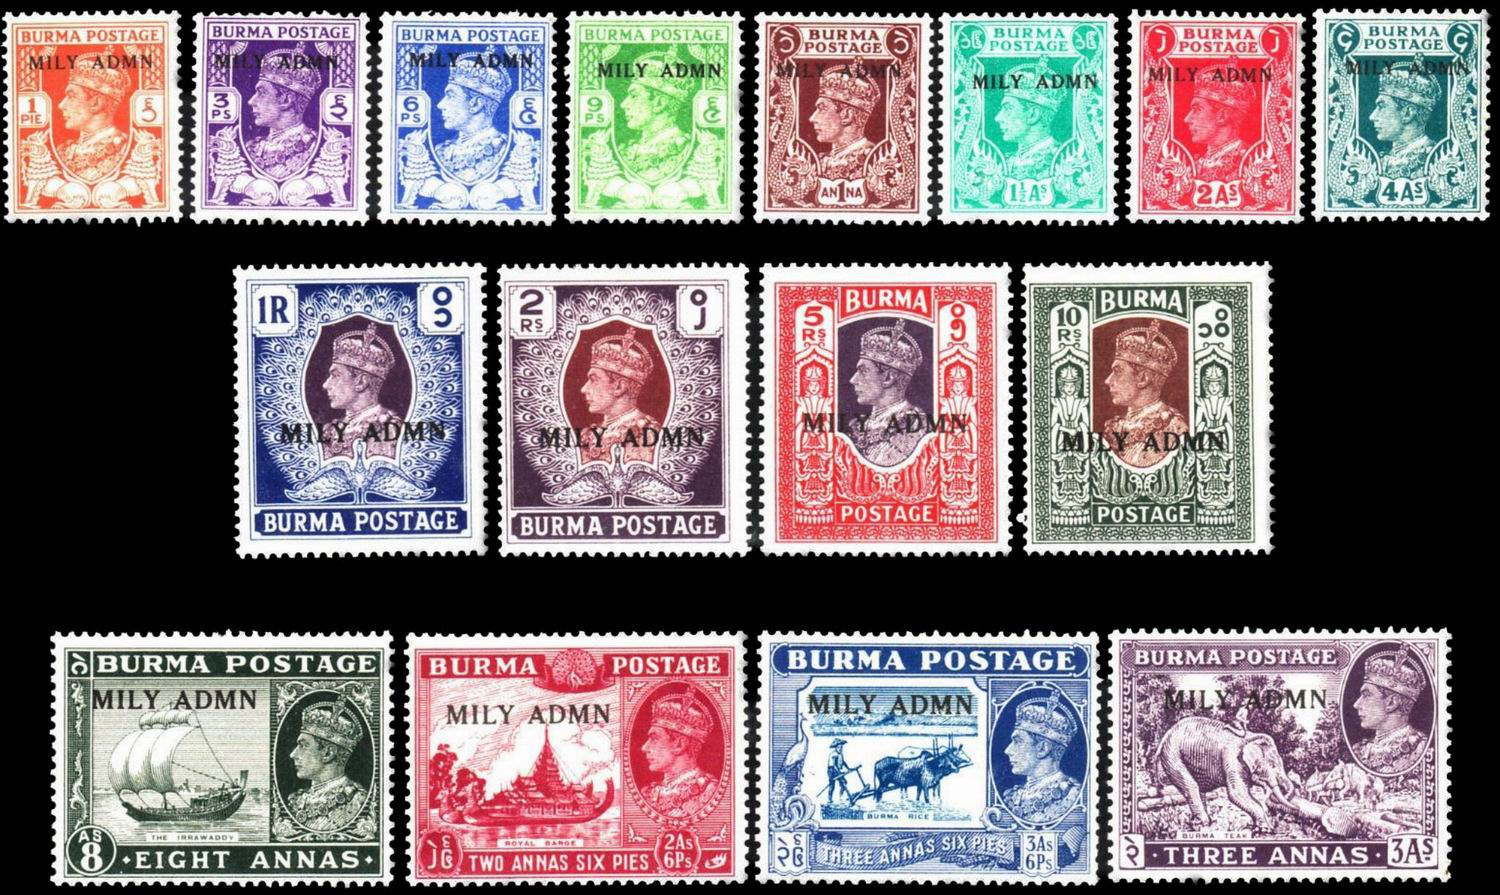 British Burma KGVI 1945 Military Administration Stamps MNH